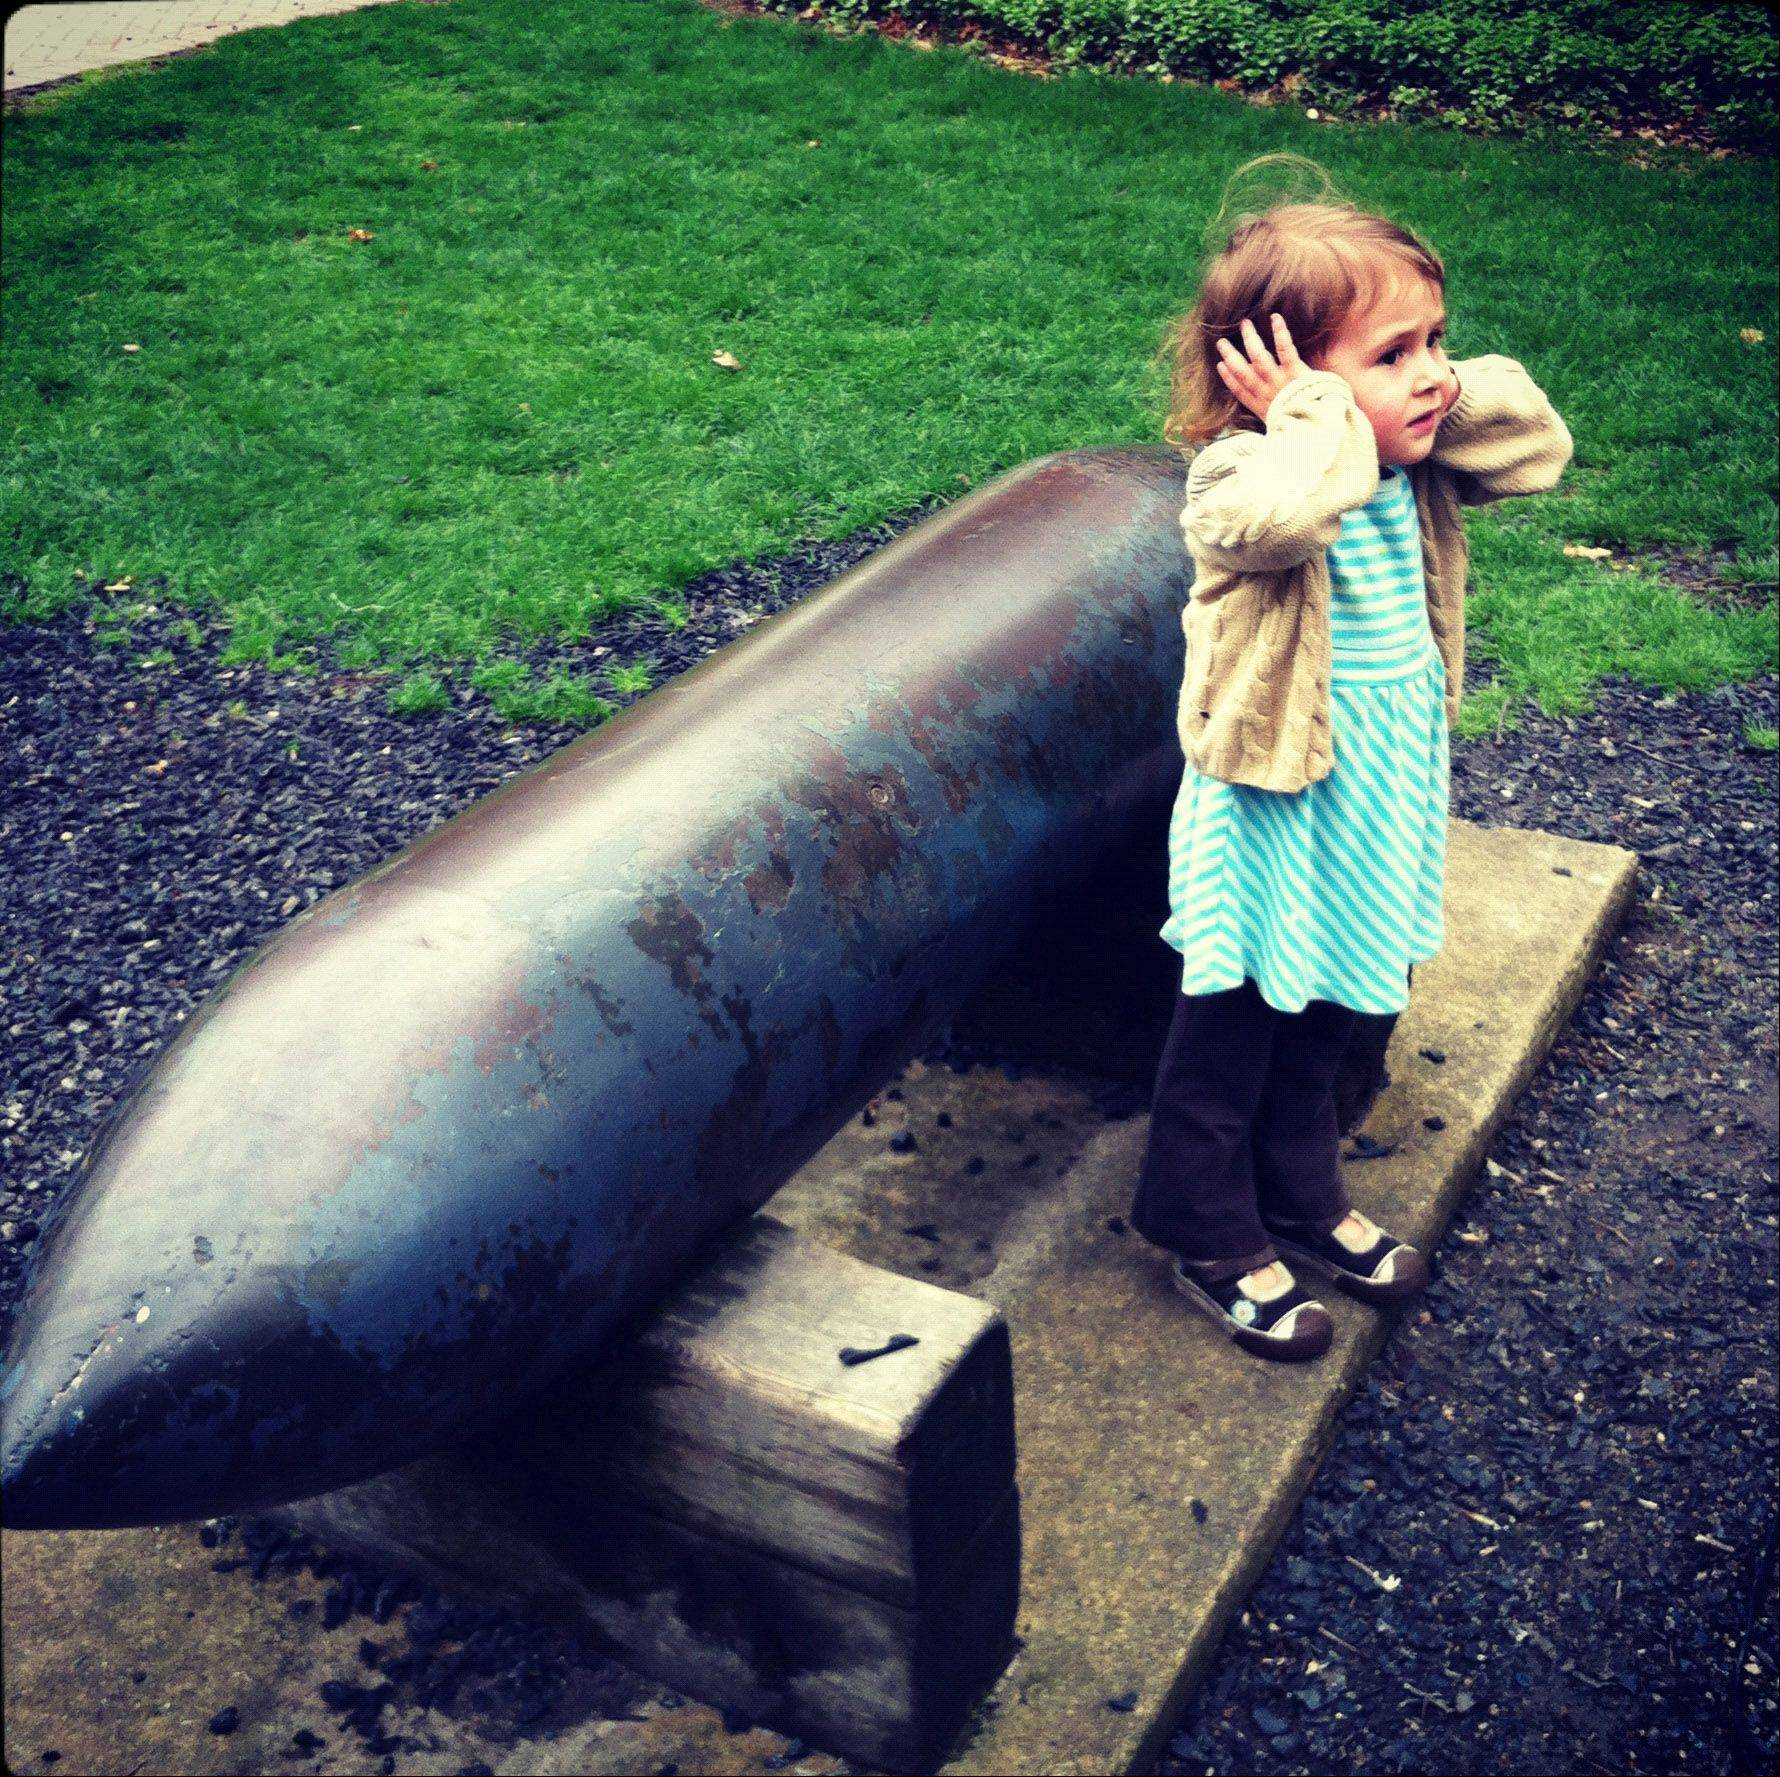 I took this picture of my daughter this past Spring on a visit to Cantigny Park. It was not posed and she must have heard something loud. I thought it captured a lot.